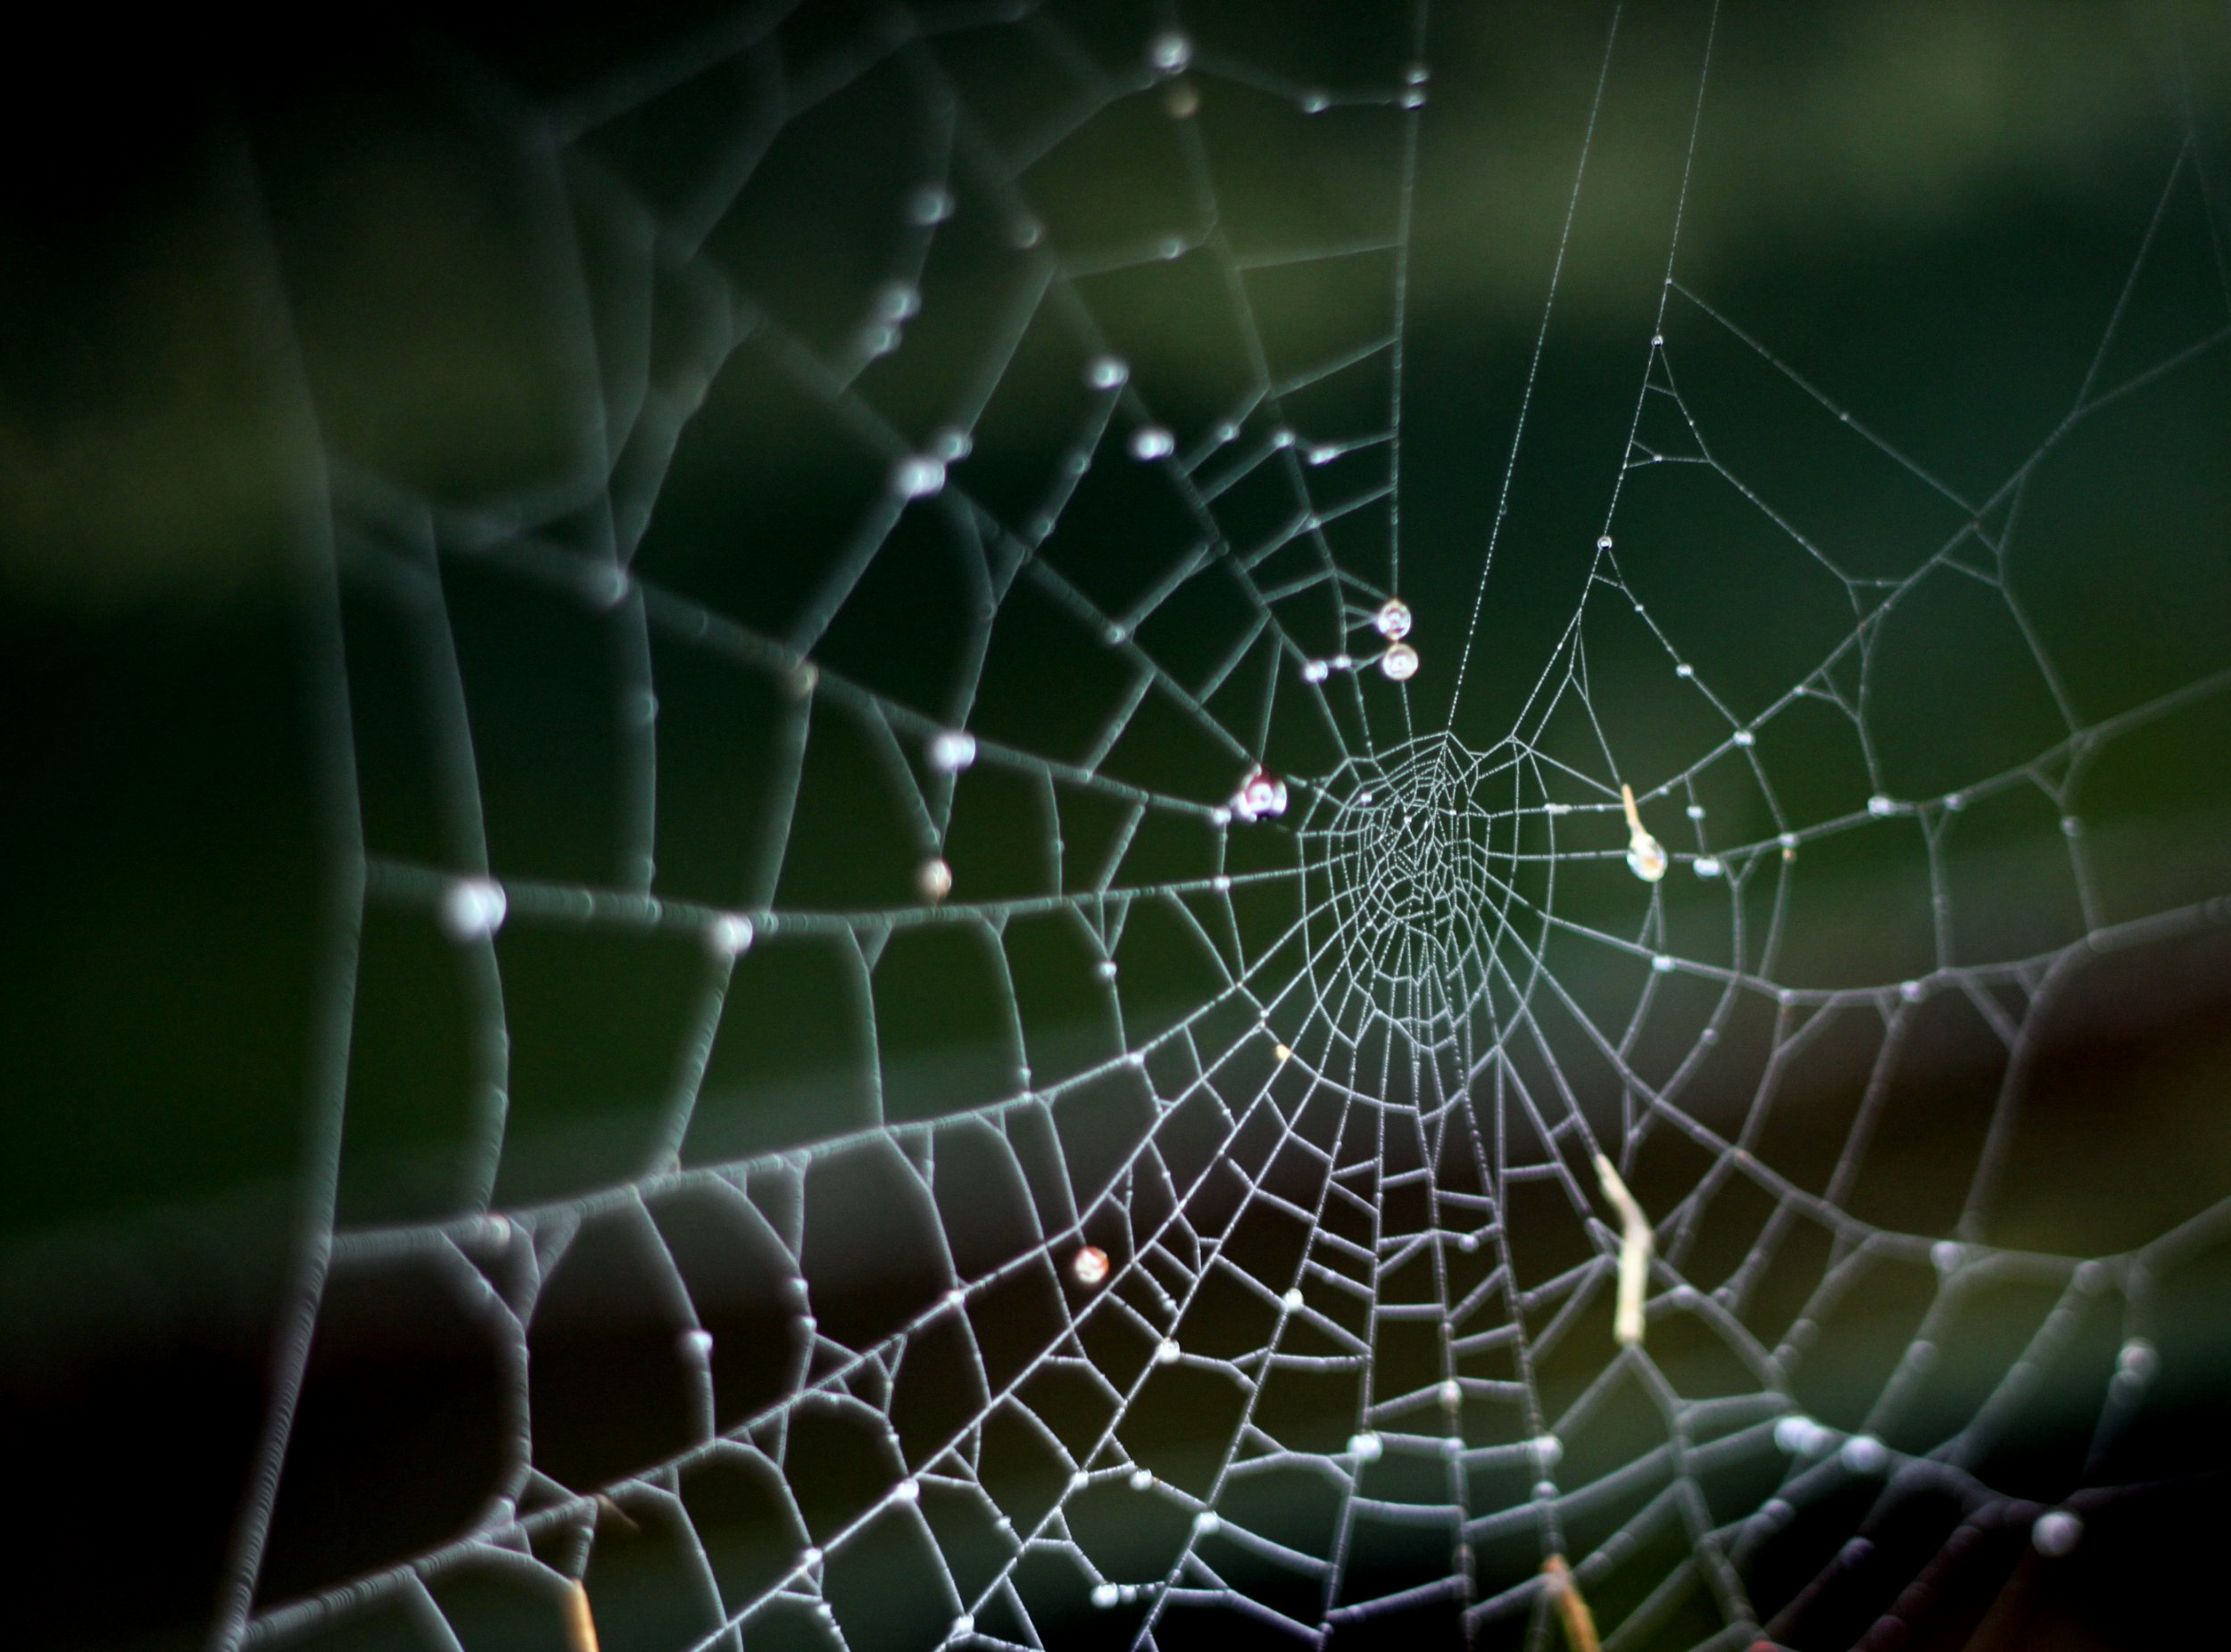 Where do spiders go in the winter and how do they survive?